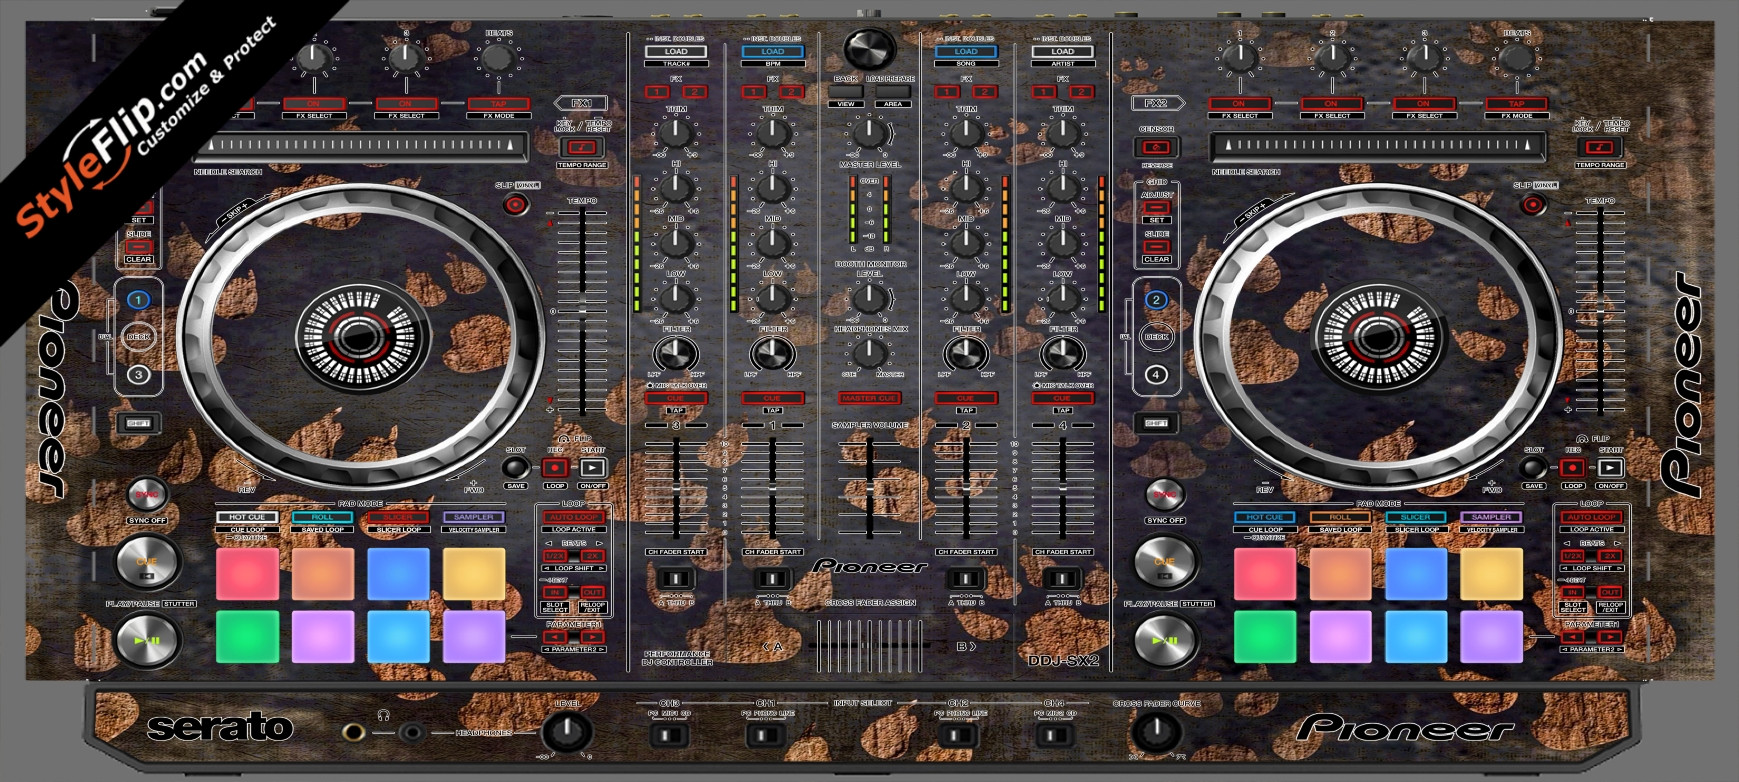 Dog House Pioneer DDJ-SX2